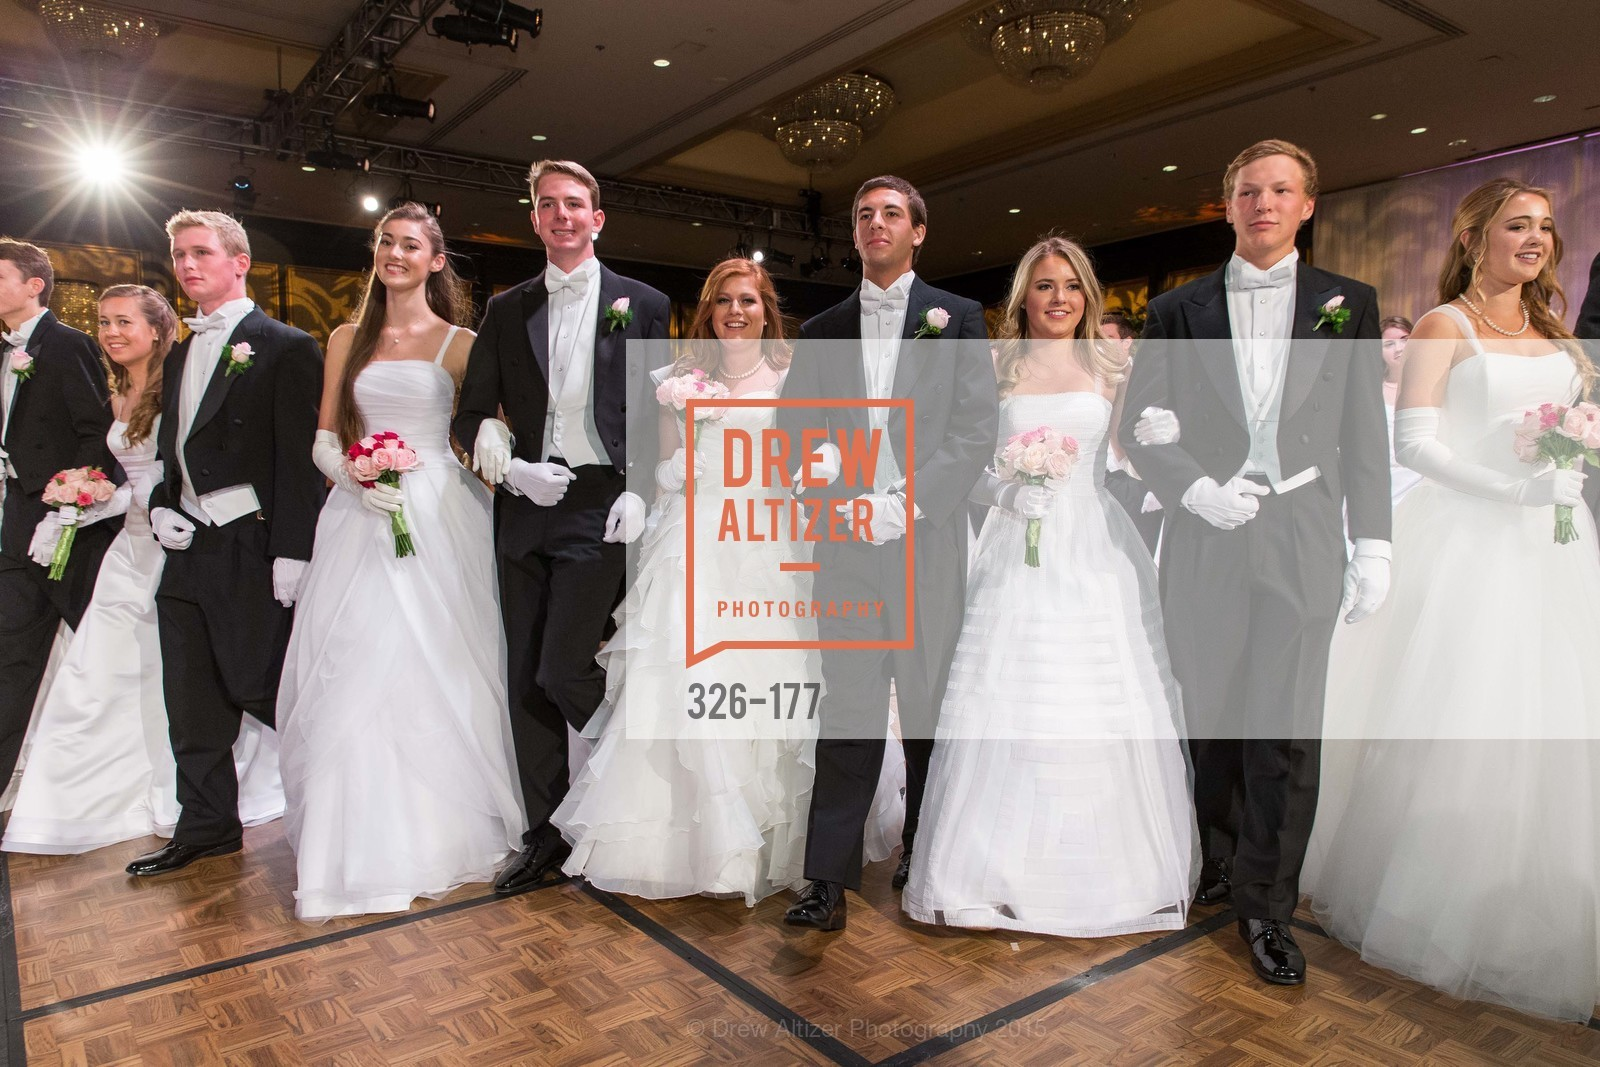 Sarah Elizabeth Jackmauh, Luca Sullivan, Madeleine Elizabeth Lamm, William HIbbard Dana III, Allaire Houston Kruse, Daniel Conte, Katherine Hamilton Harris, Luke Rosser Edwards, Paloma Palmer, The 2015 San Francisco Debutante Ball, The Westin St. Francis San Francisco Union Square. 335 Powell St, June 20th, 2015,Drew Altizer, Drew Altizer Photography, full-service agency, private events, San Francisco photographer, photographer california